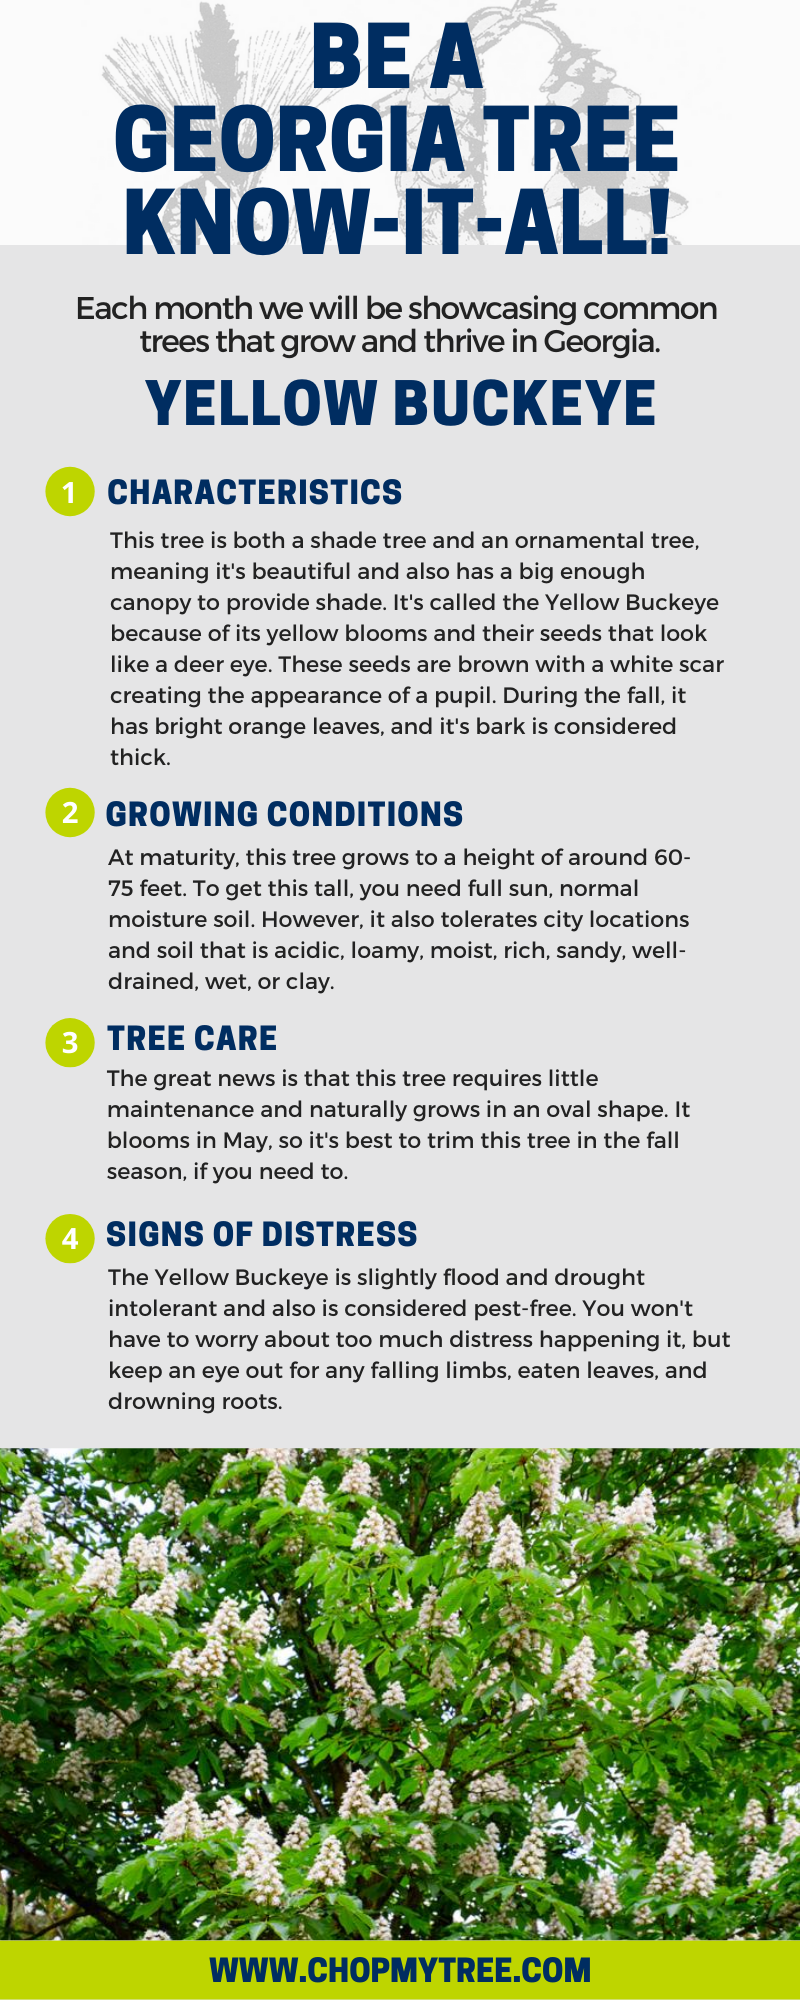 Infographic with Yellow Buckeye information.